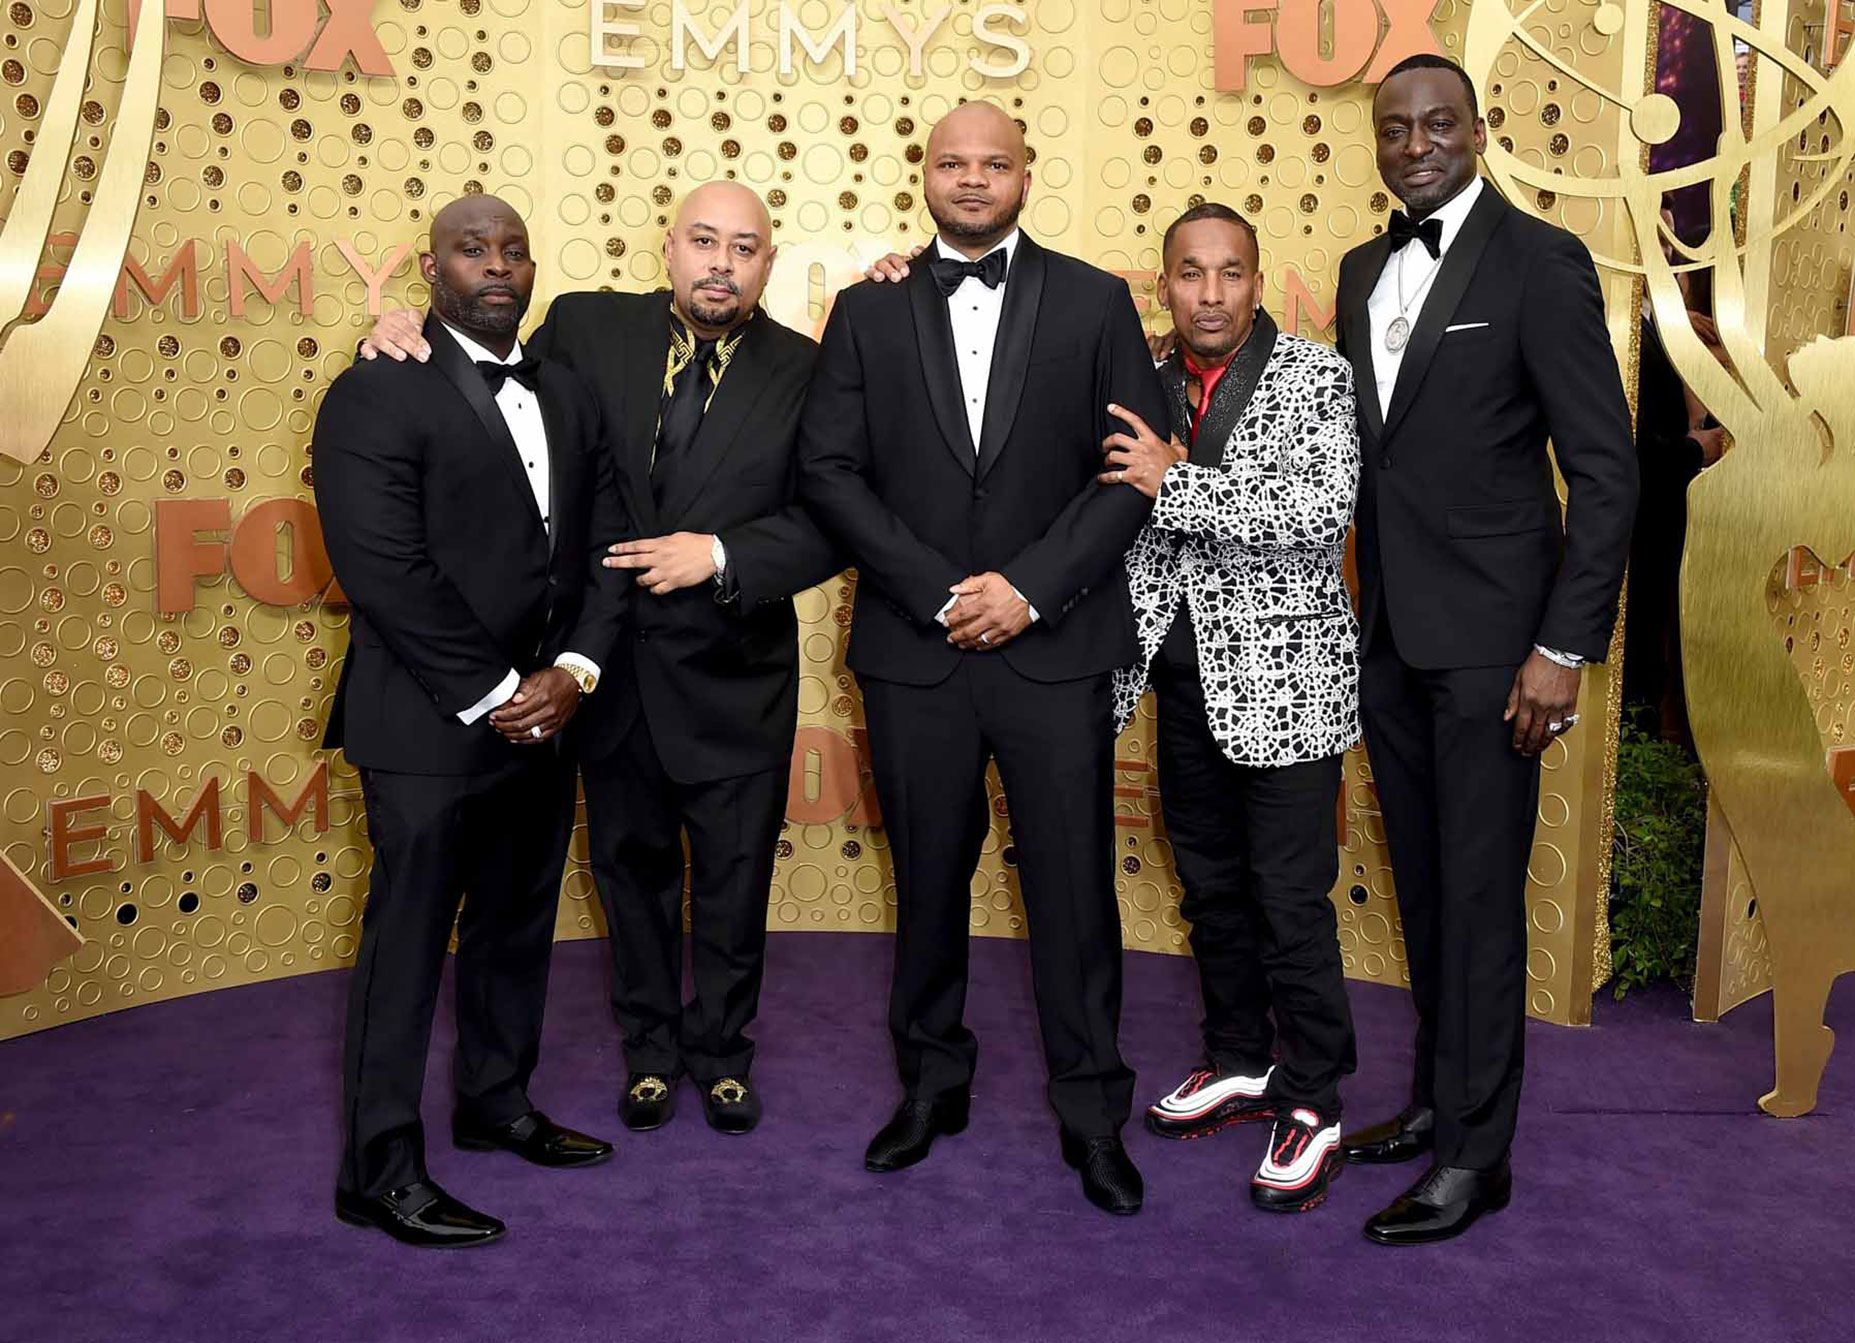 Central Park 5 at the 2019 Emmys